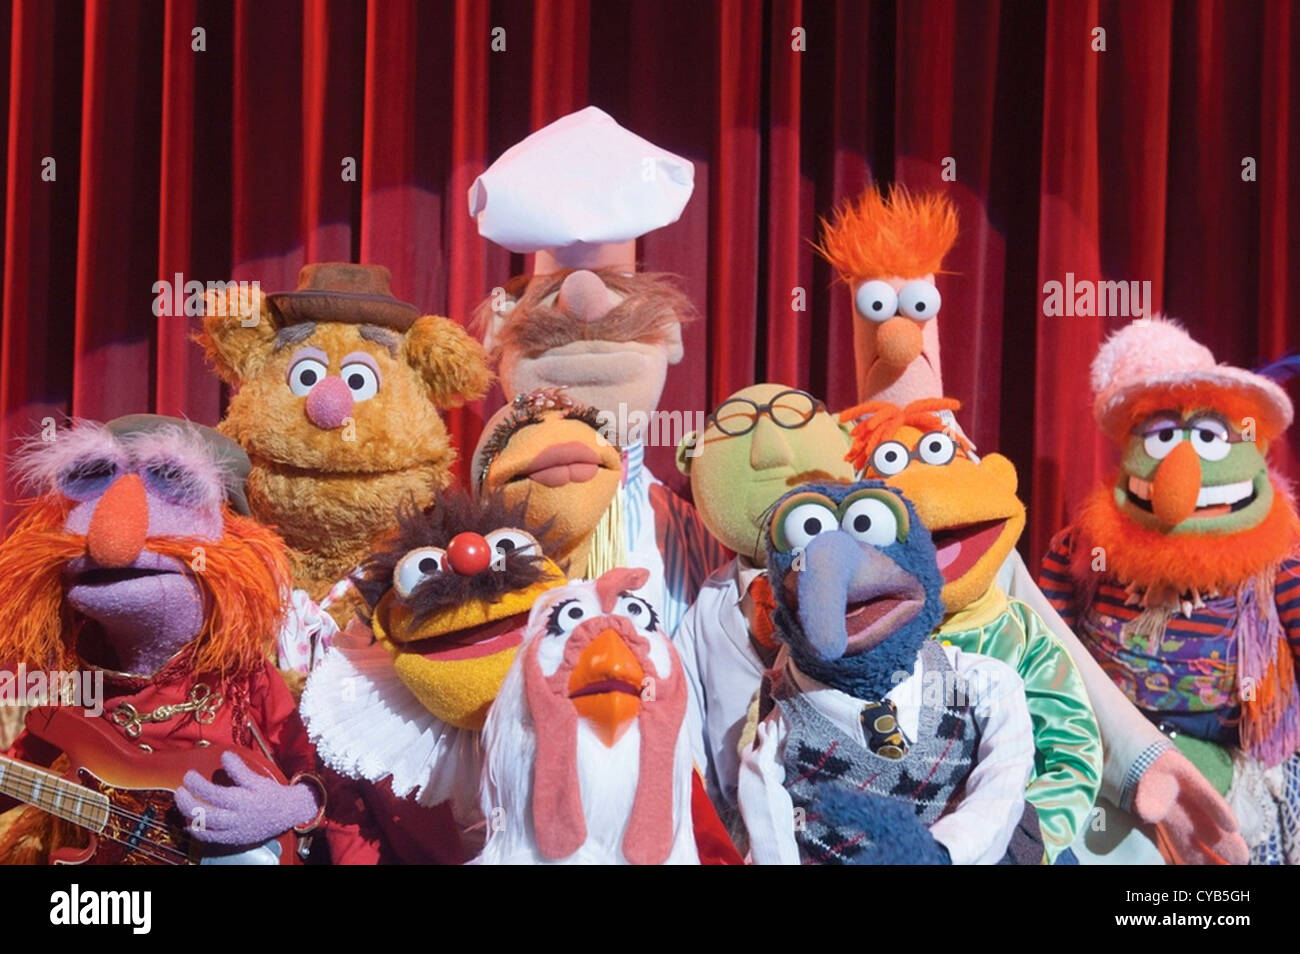 THE MUPPETS 2011 Walt Disney Pictures film - Stock Image